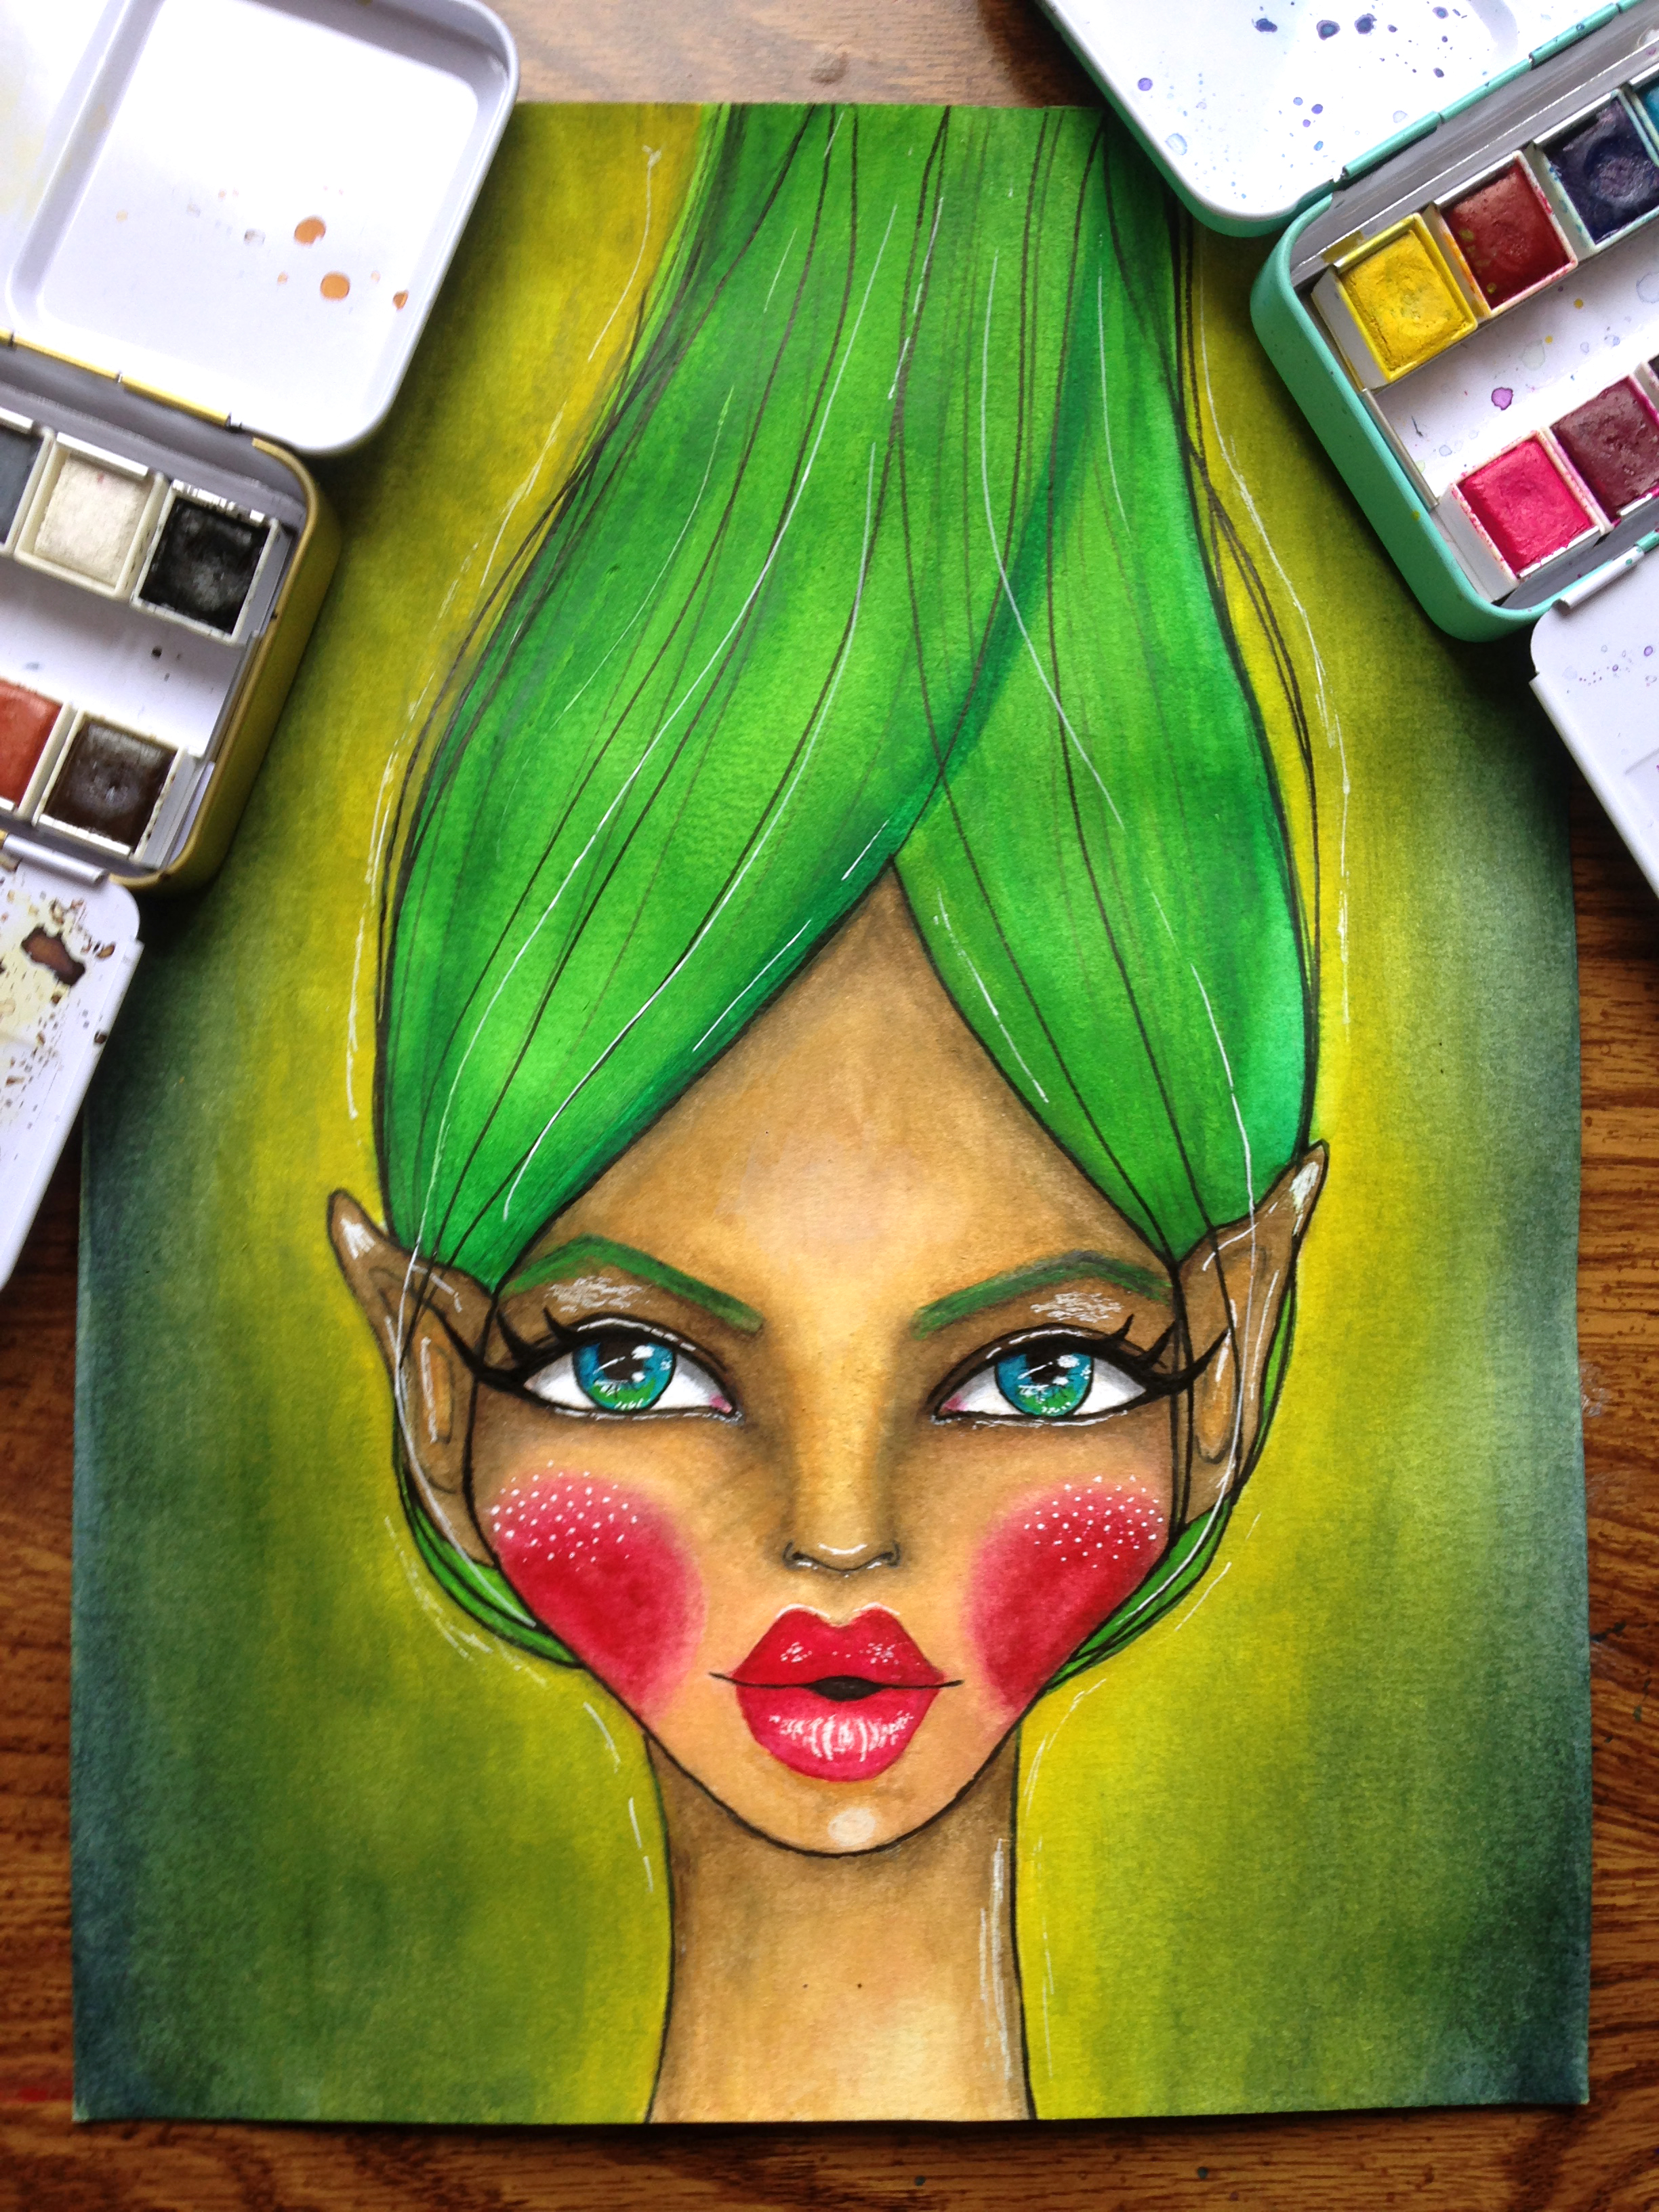 Fun Fab Face 3/100. Green-Haired Whimsical Fairy Watercolor Painting. Artwork By Corrinna Johnson. 100 Fun Fab Faces Drawing Challenge Hosted By Karen Campbell.